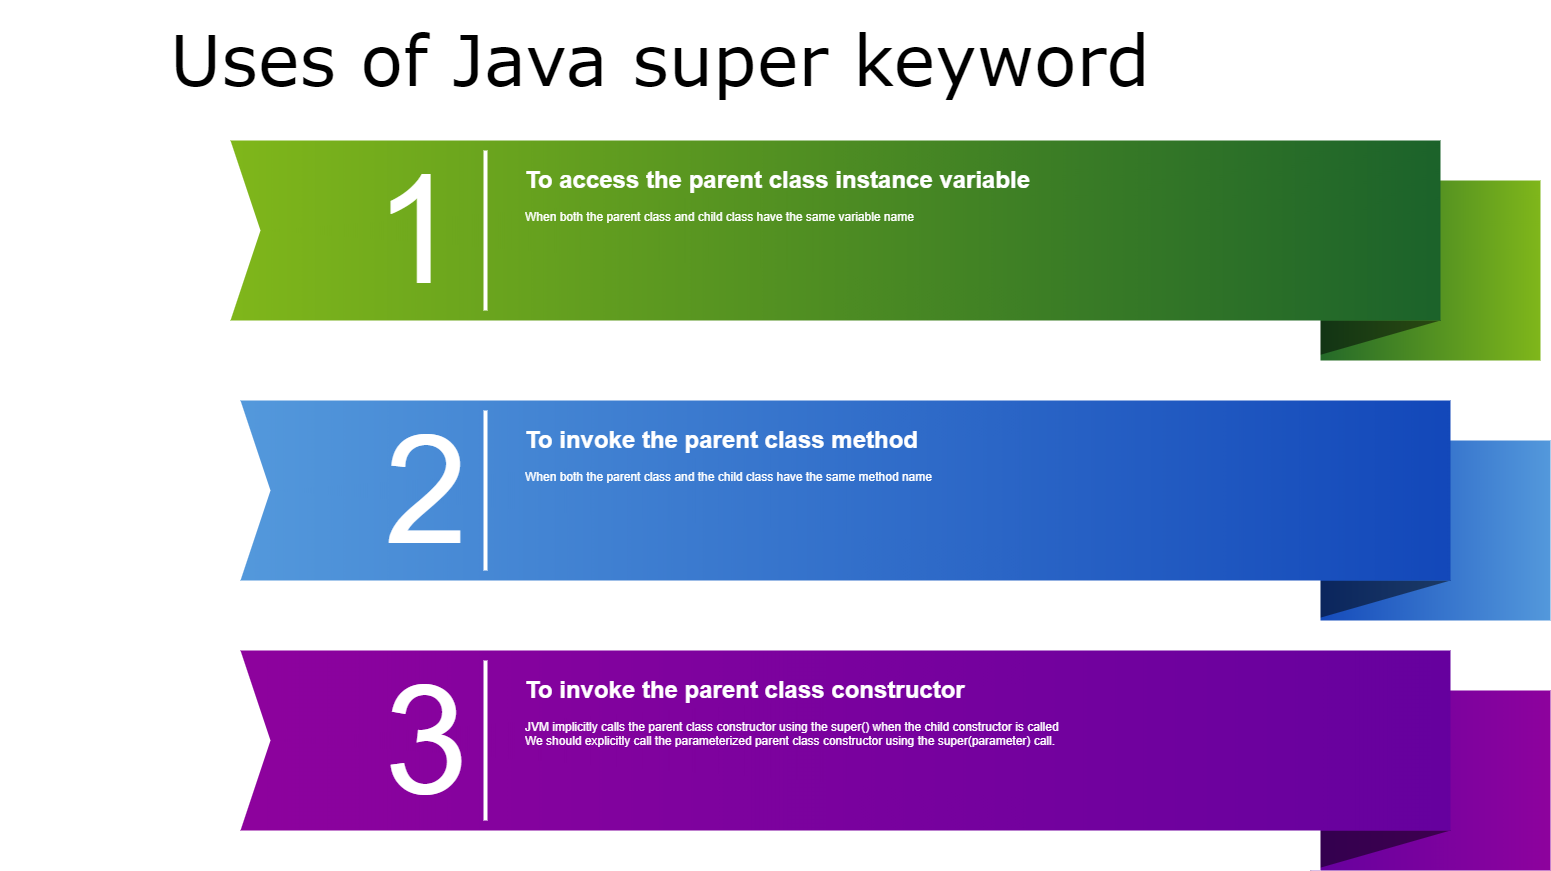 Java super keyword